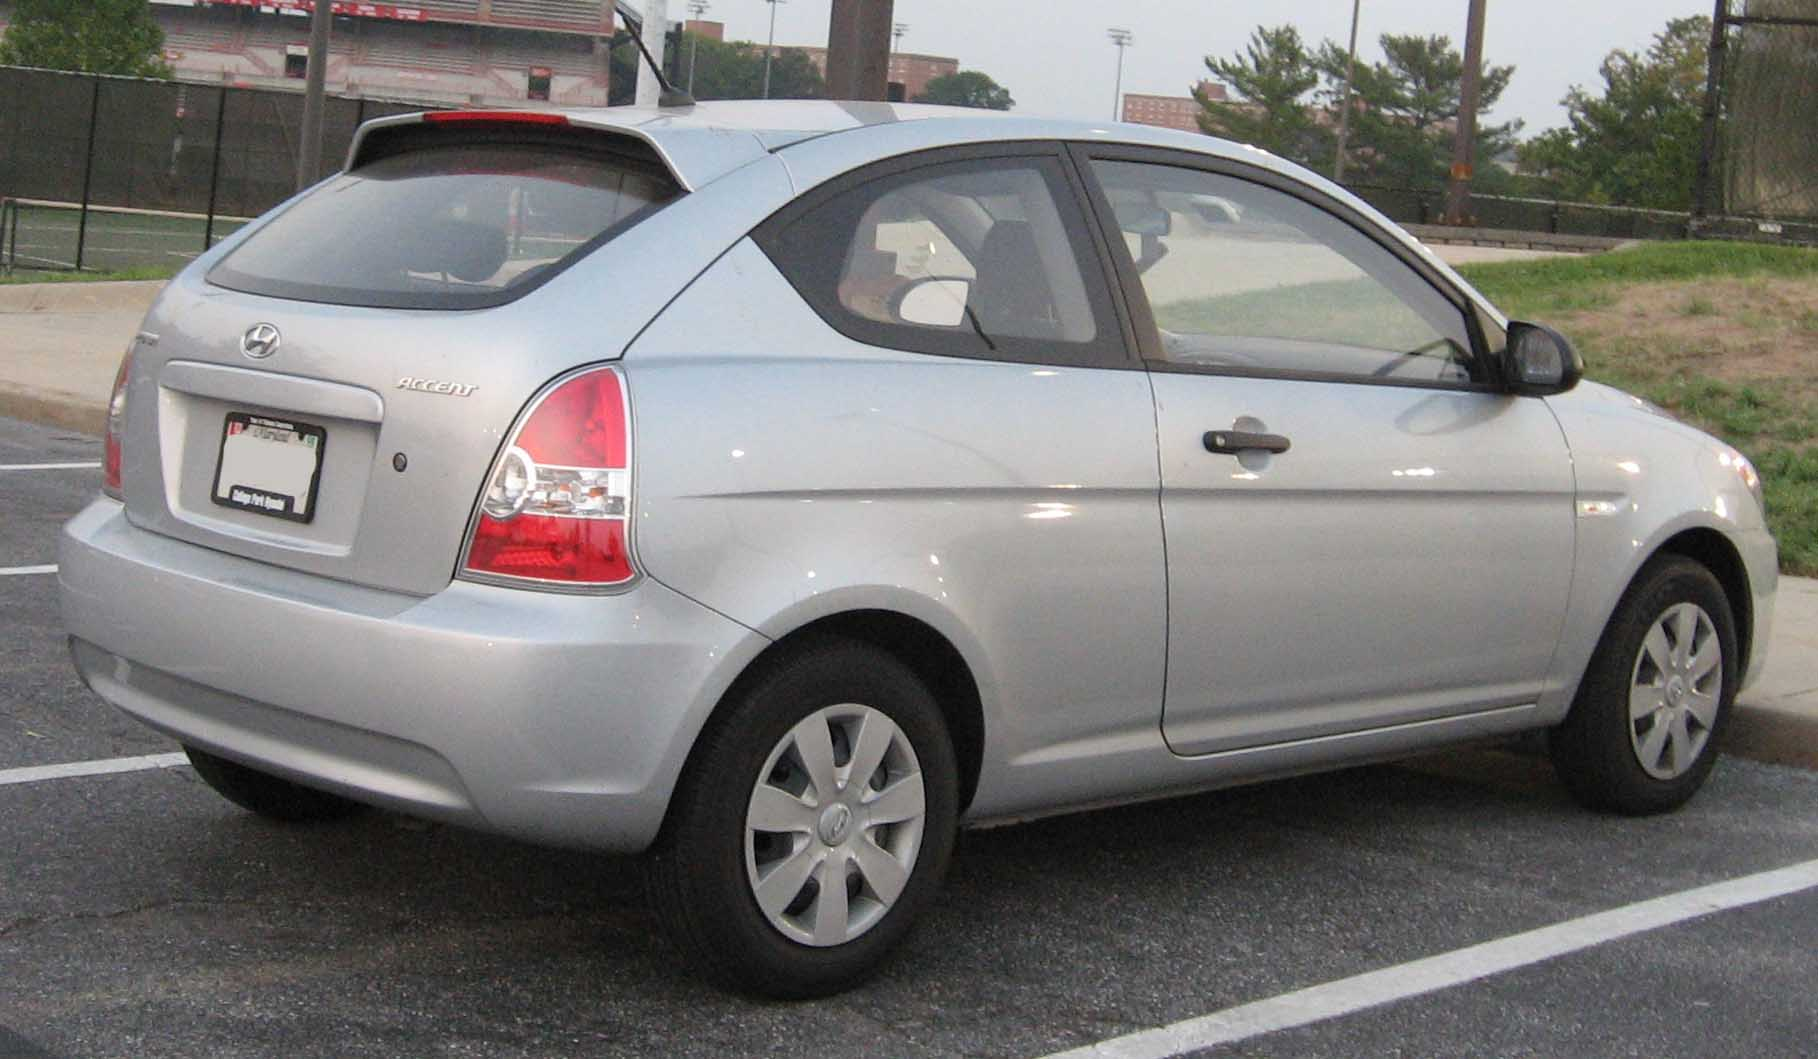 File Hyundai Accent Hatchback Rear 1 Jpg Wikimedia Commons